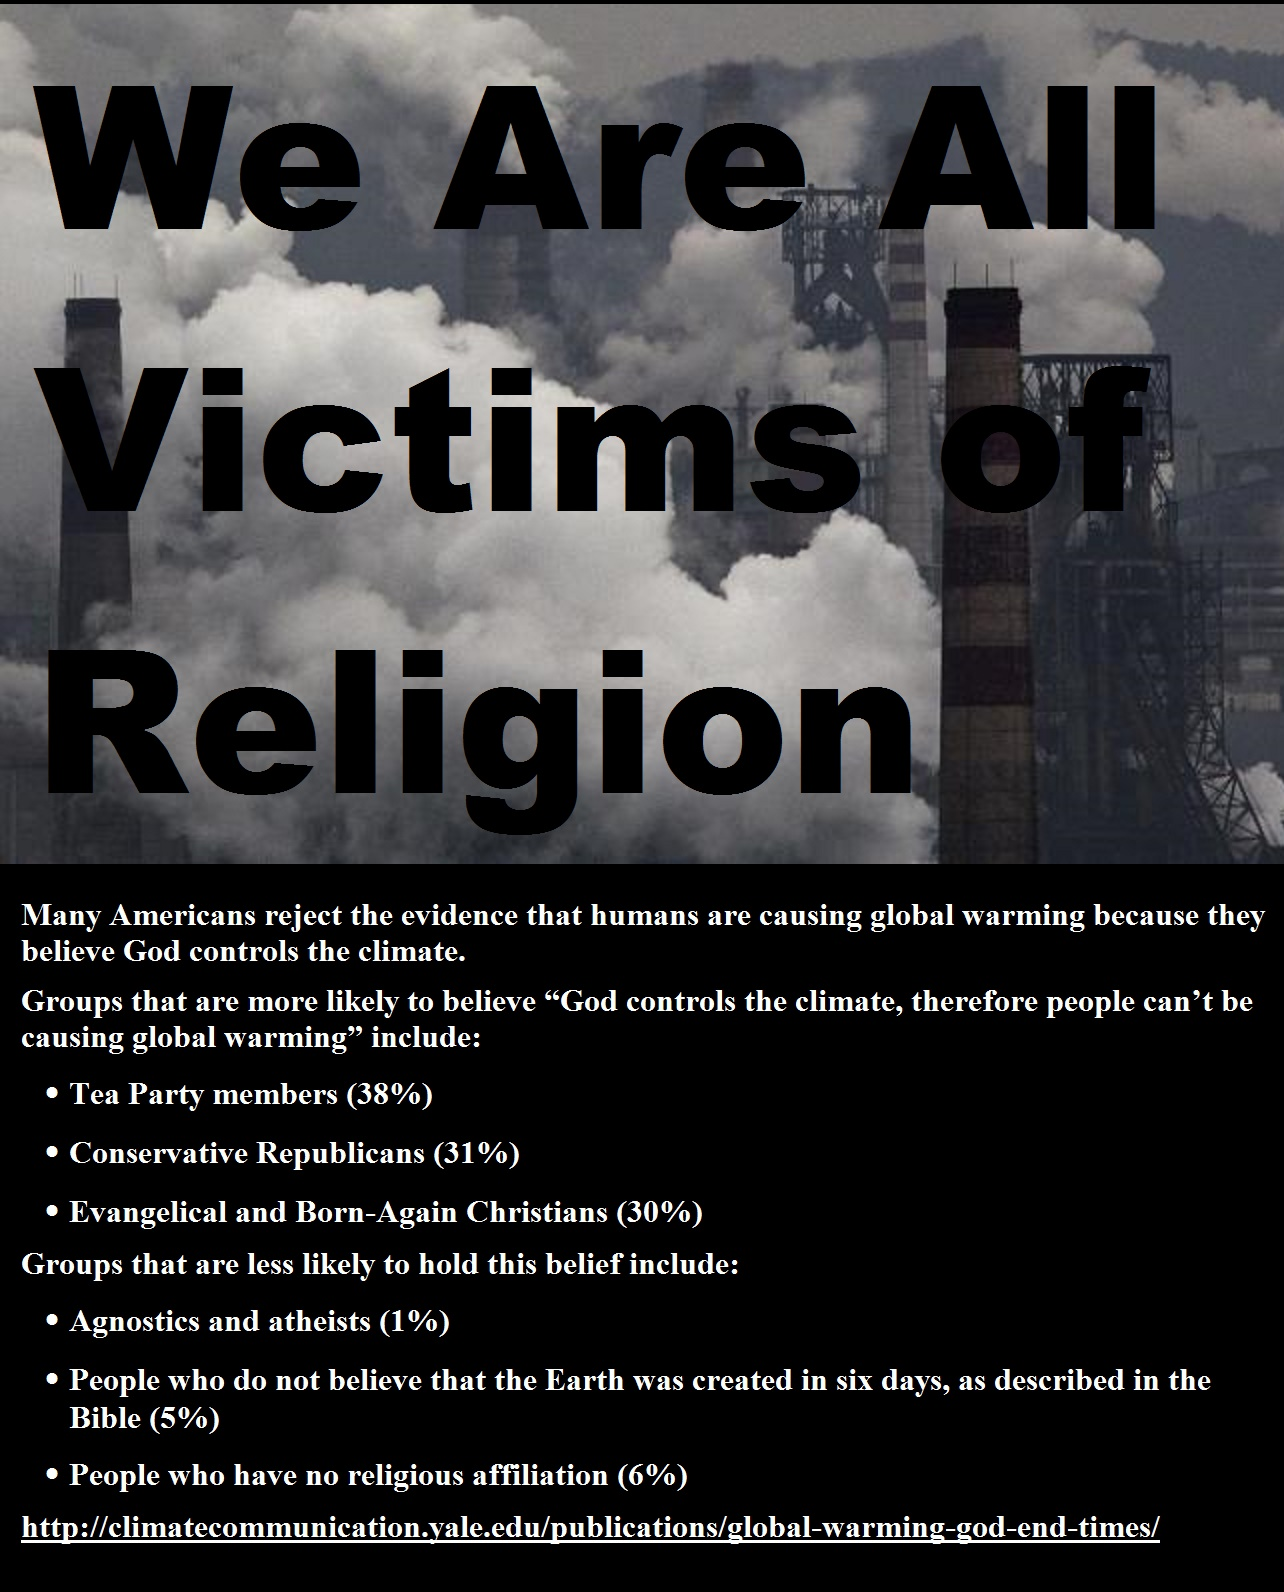 We Are All Victims of Religion